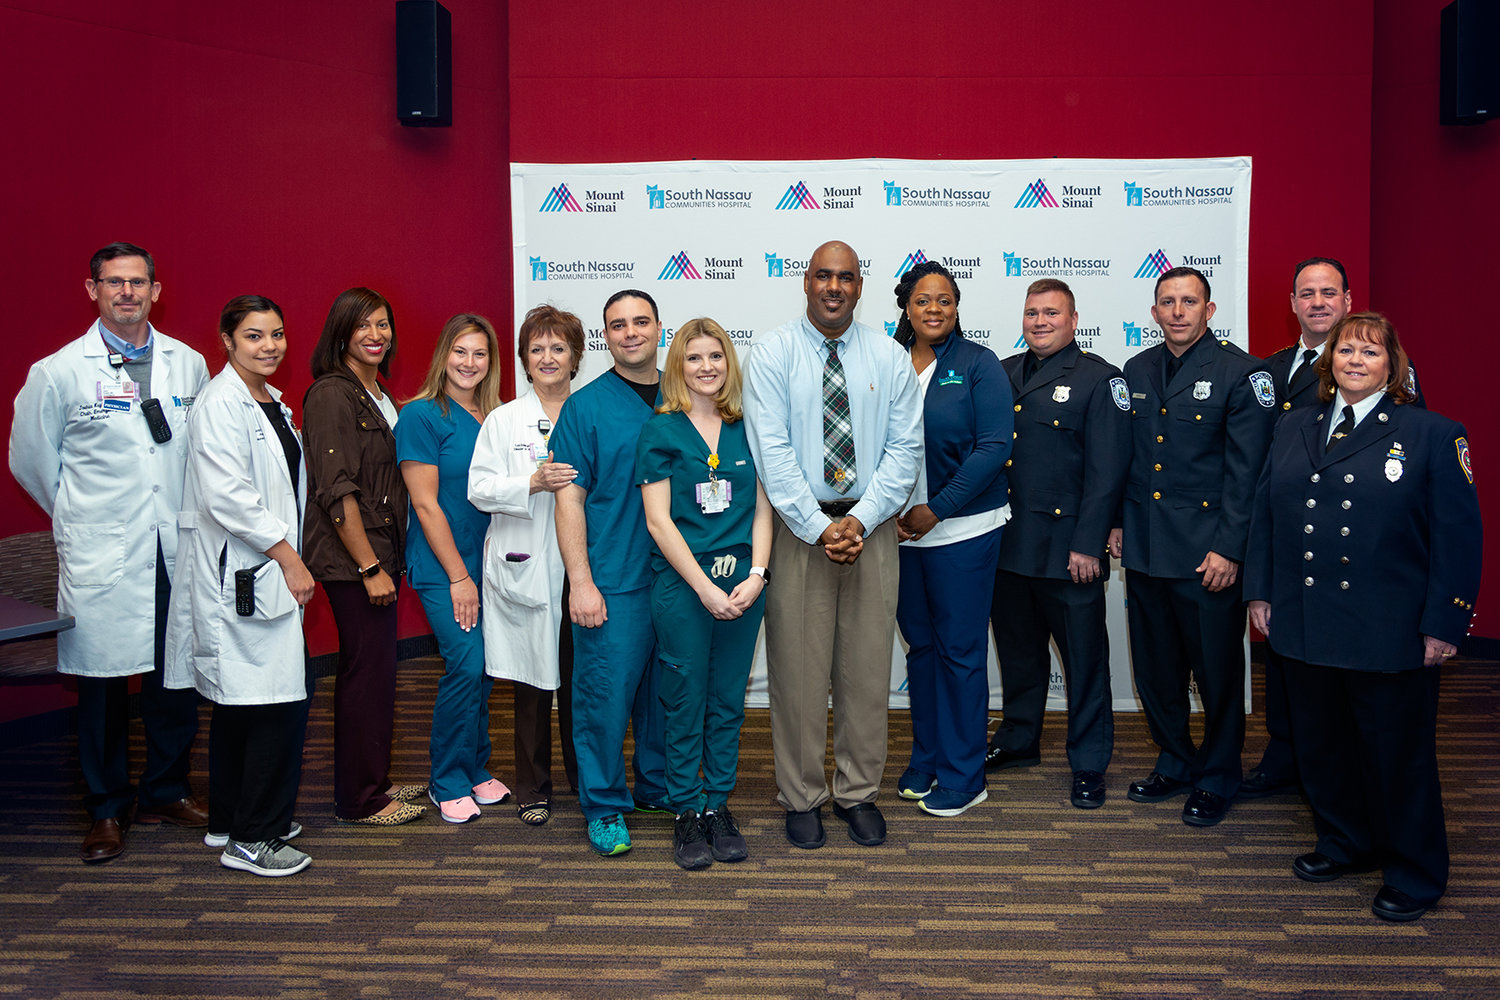 Mason, center, reunited with Allen-Ibitoye, to his immediate left, and the team of first responders from the Lynbrook Police Department, as well as the nurses and cardiac physicians who helped save his life on May 2 at a news conference at South Nassau.